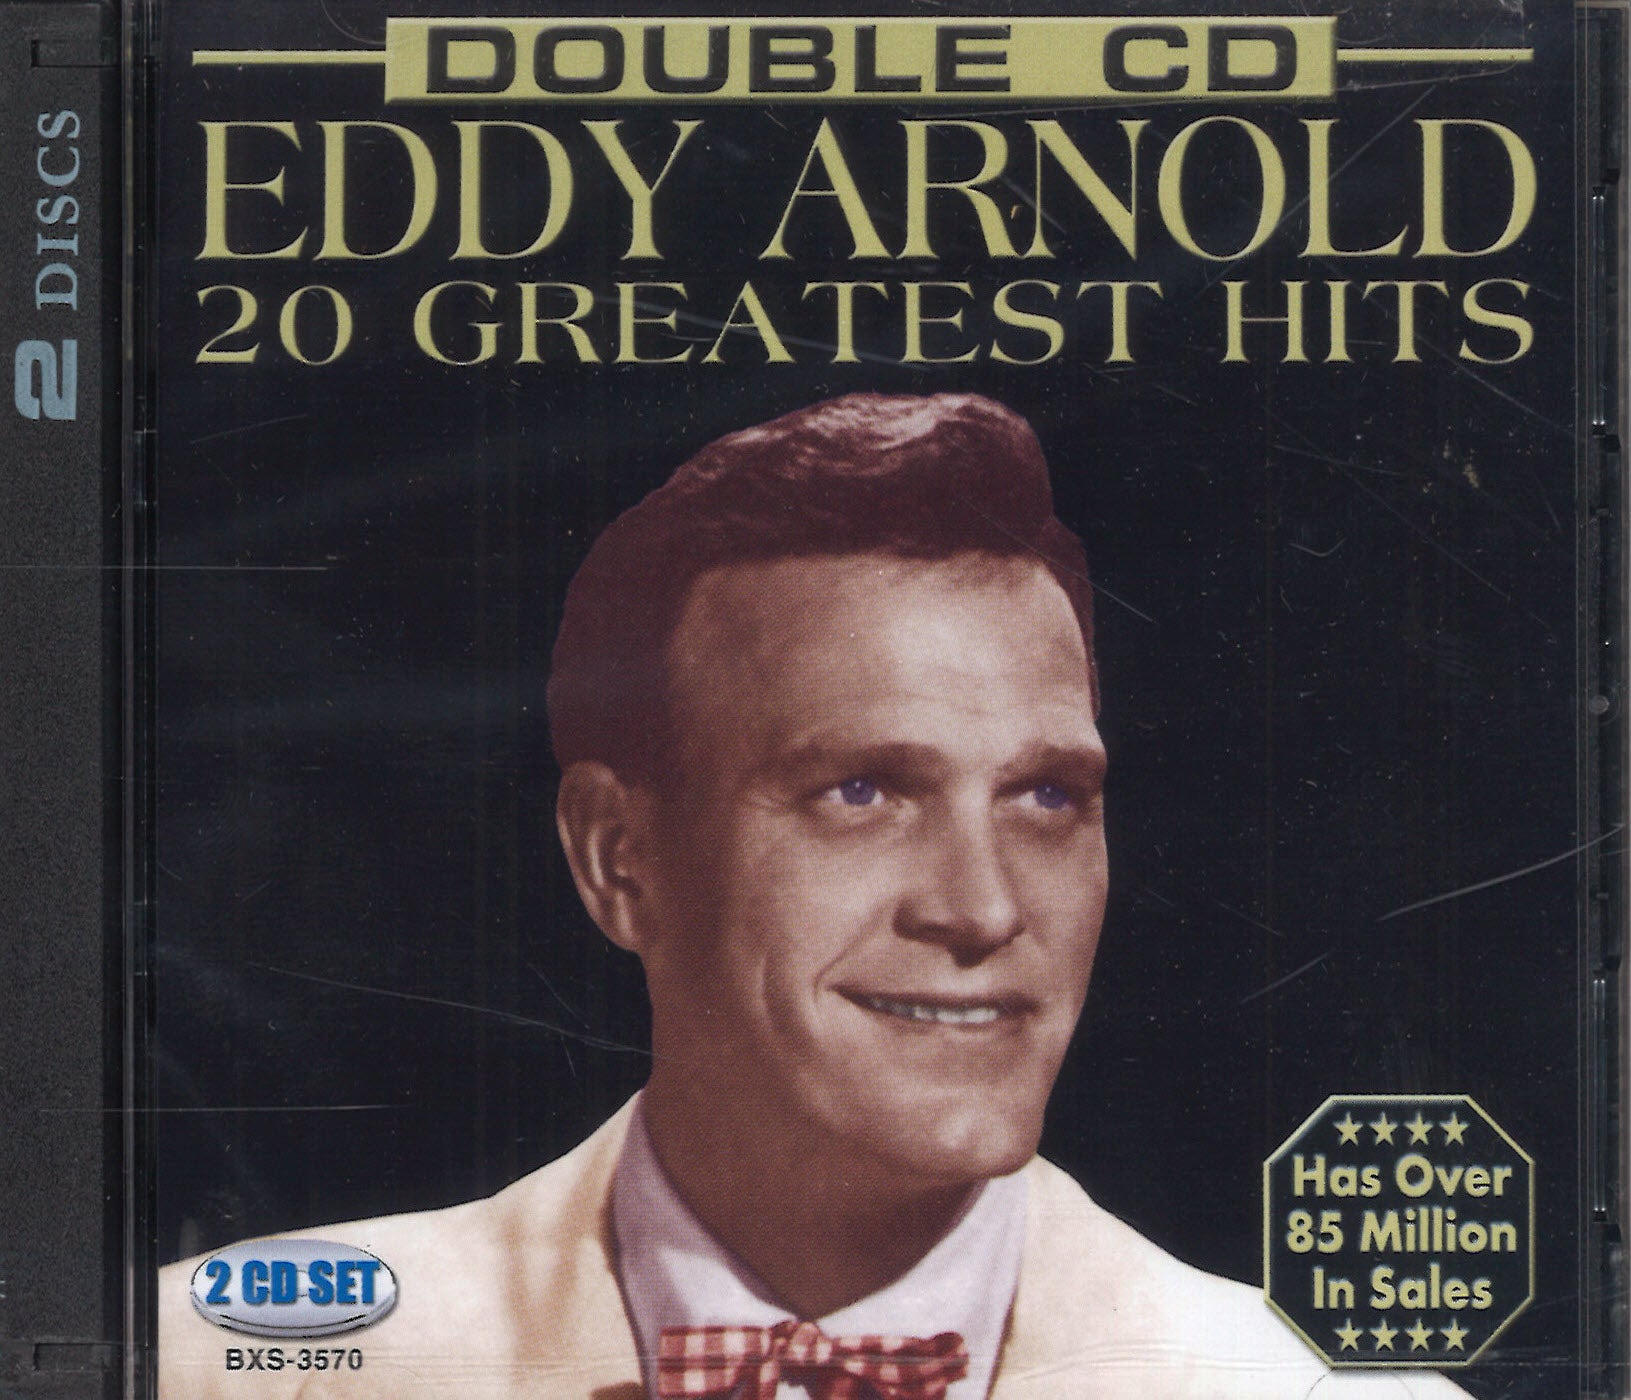 Eddy Arnold 20 Greatest Hits: 2 CD Set